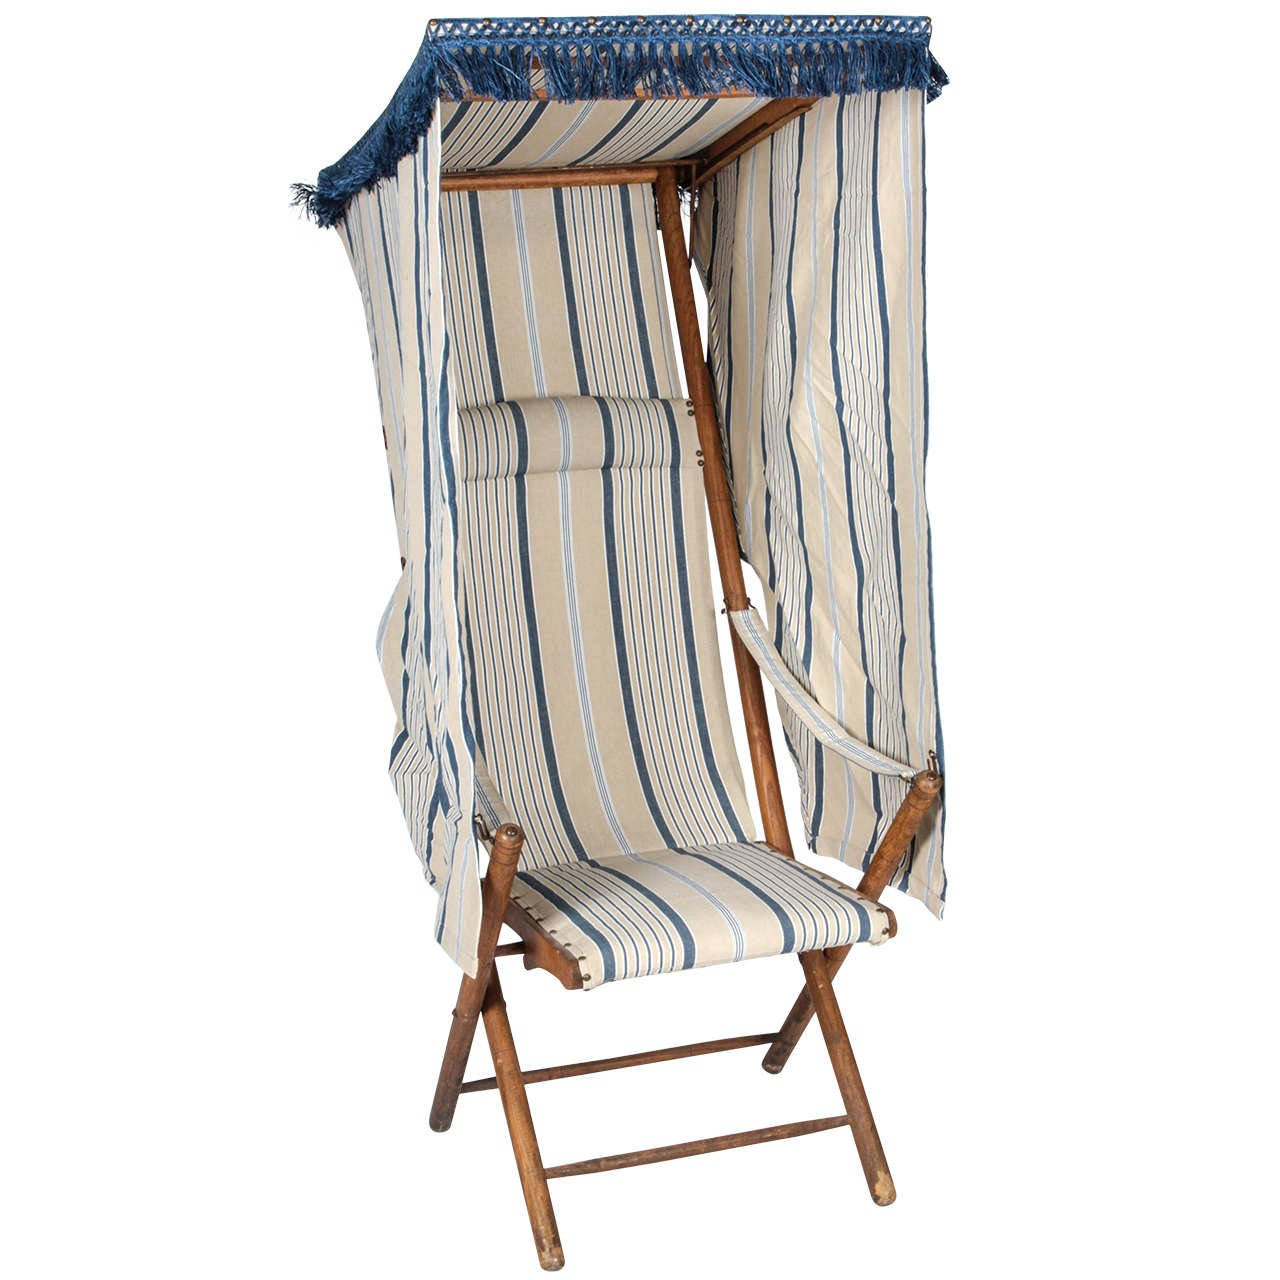 French Beach Chair with Canopy at 1stdibs